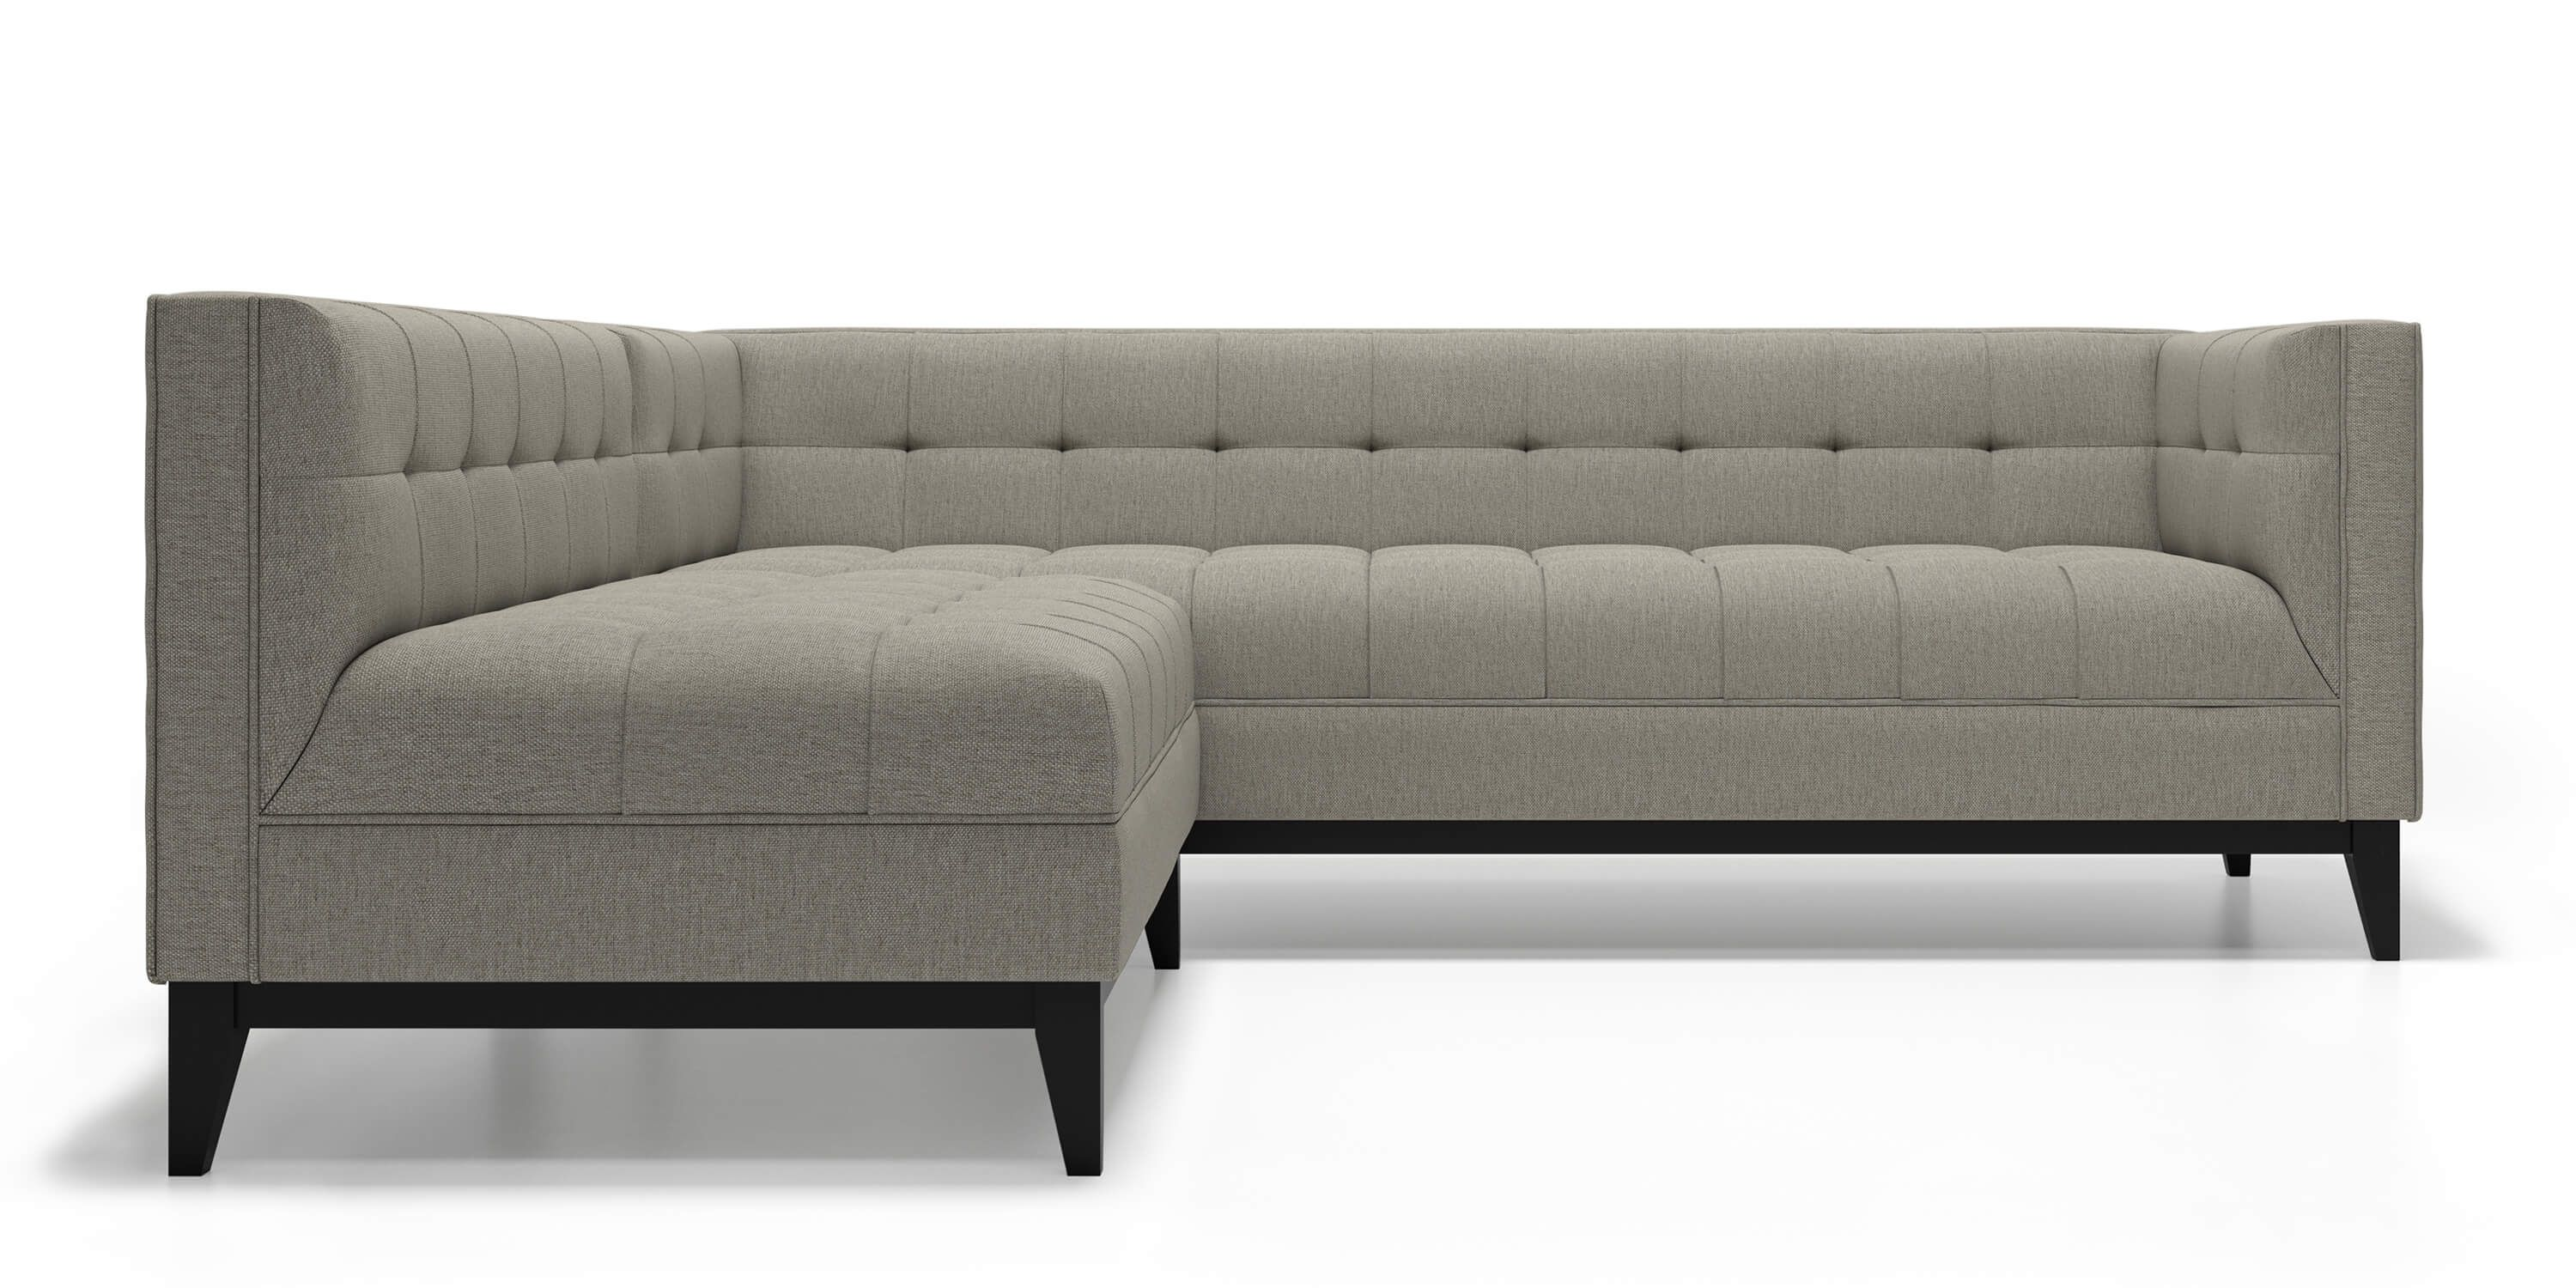 Nigel sofa sectional in grey goose fabric by kavuus com 2895 00 made in canada